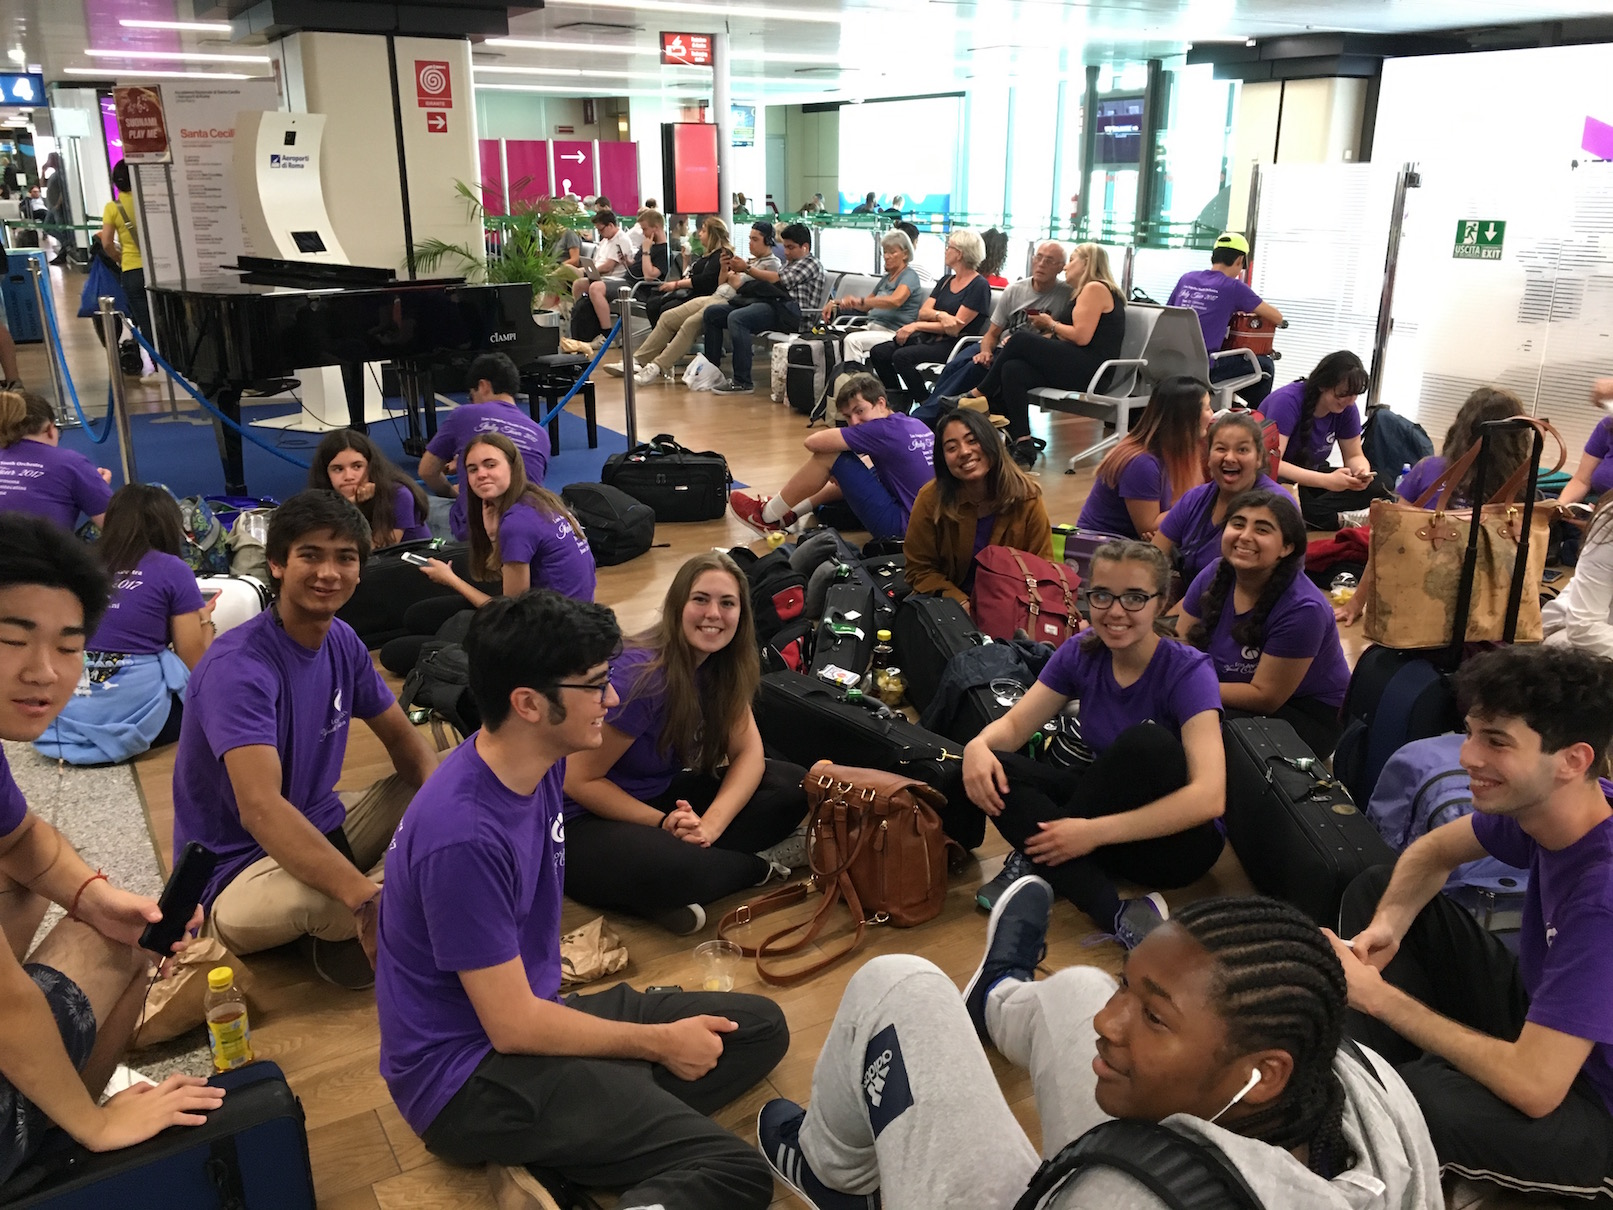 Despite a 6 hour delay at the airport, LAYO students just chill on the floor getting to know each other better.